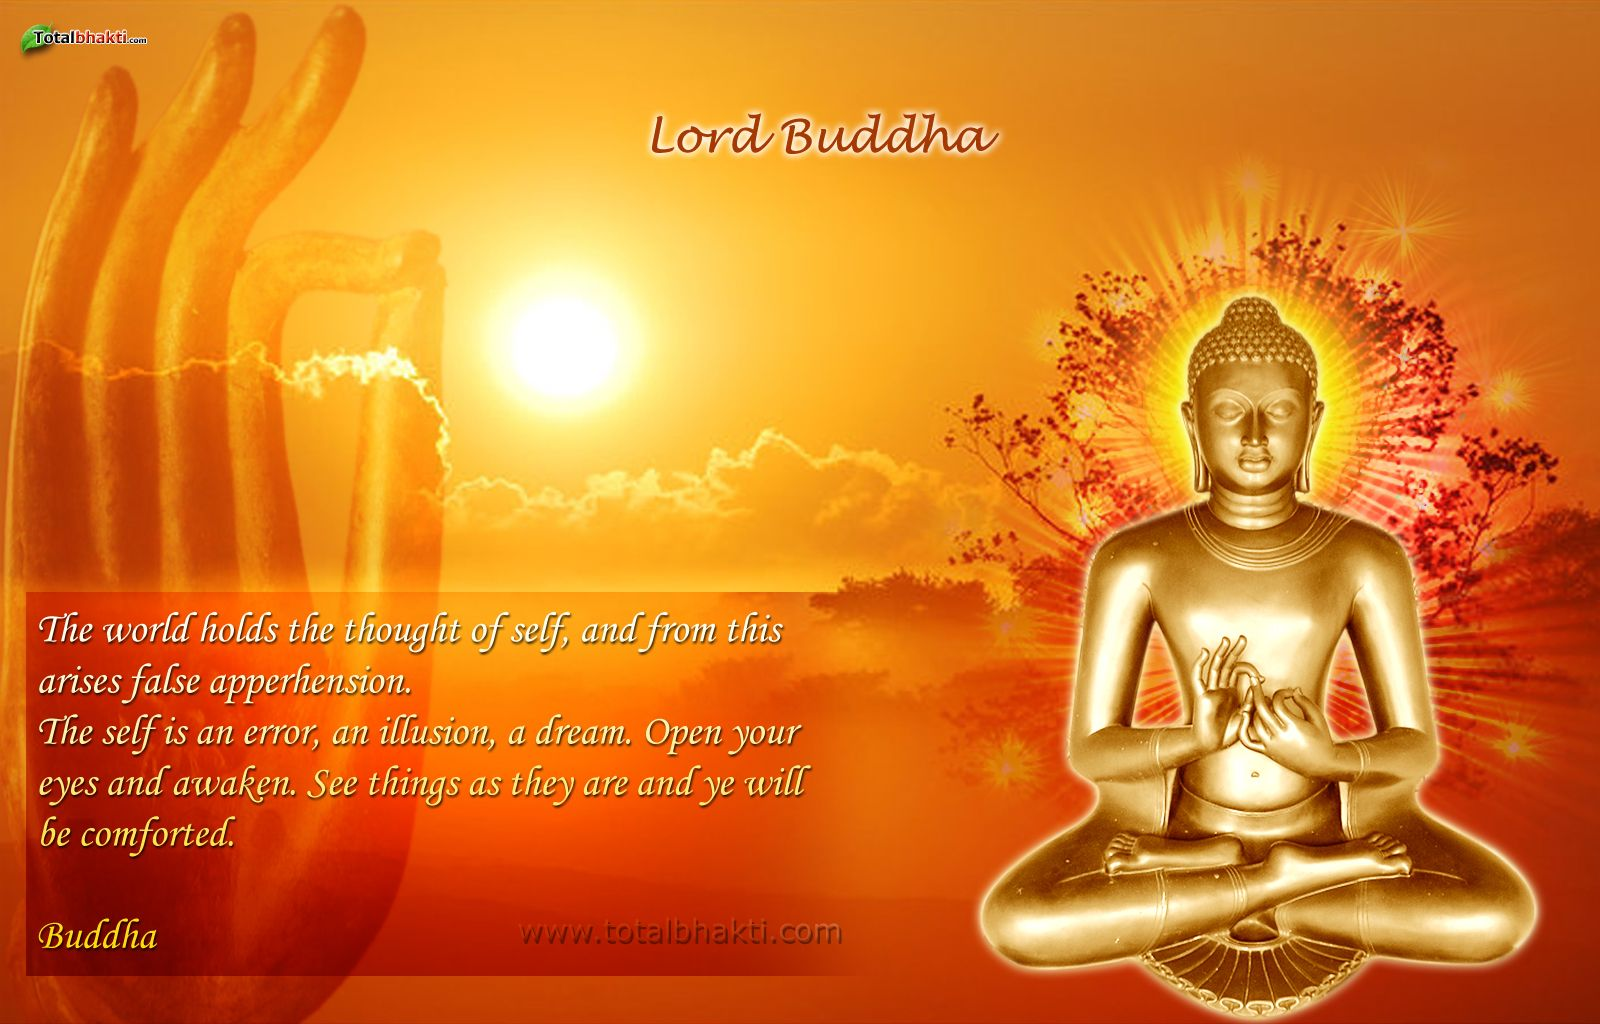 Buddha Images Lord Buddha Hd Wallpapers Buddha Law Of Attraction Manifesting Dreams